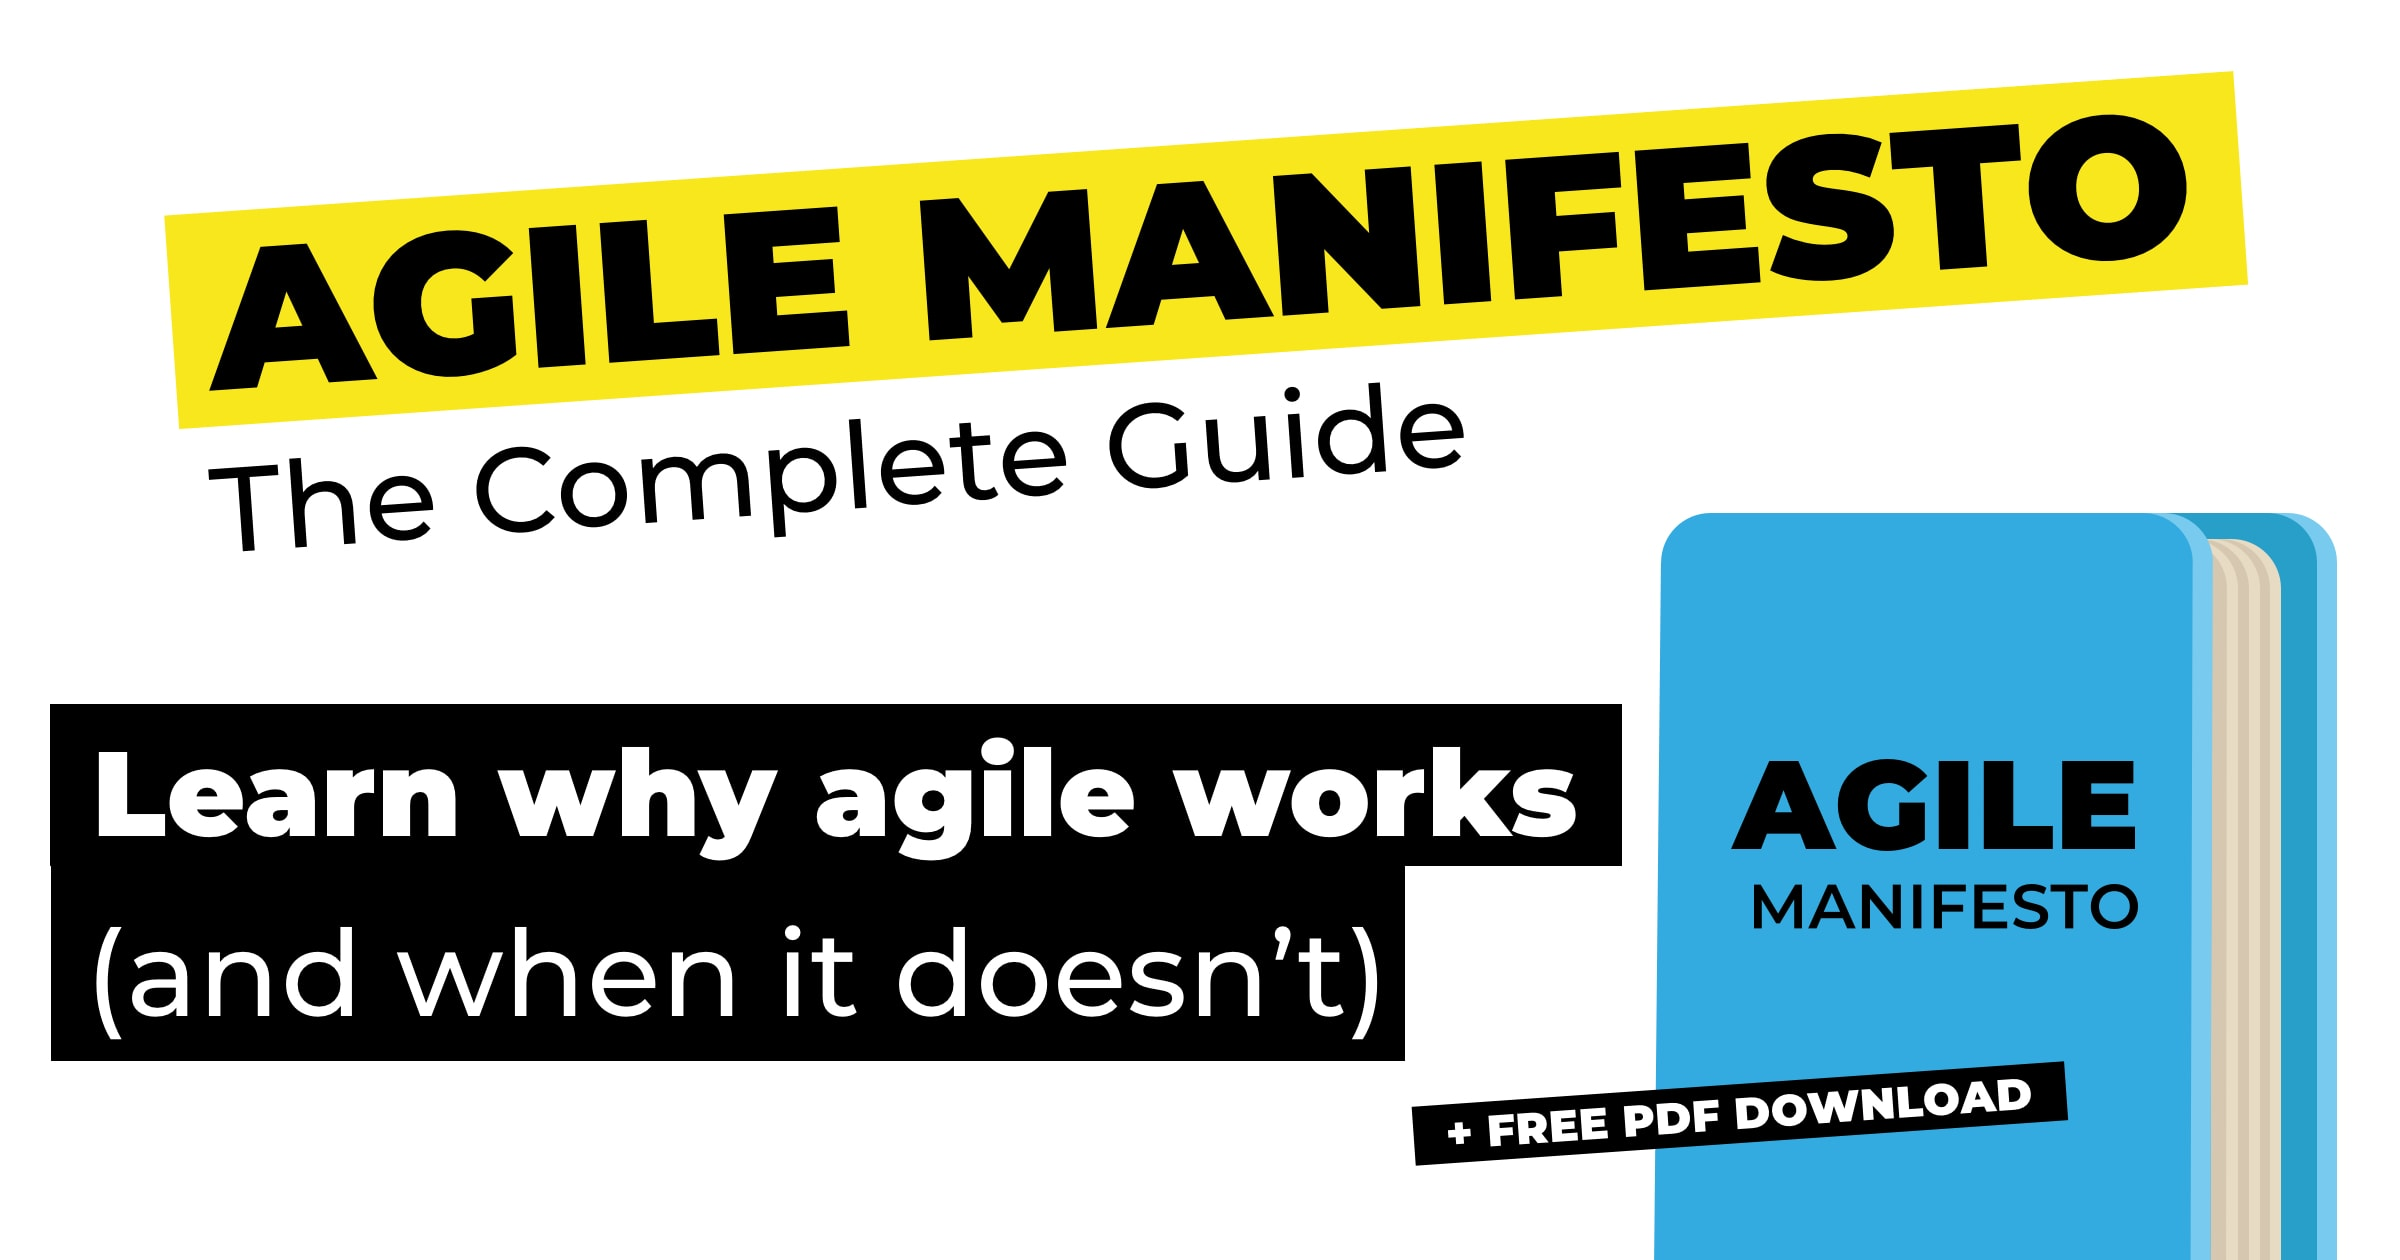 Agile Manifesto How One Document Changed Business